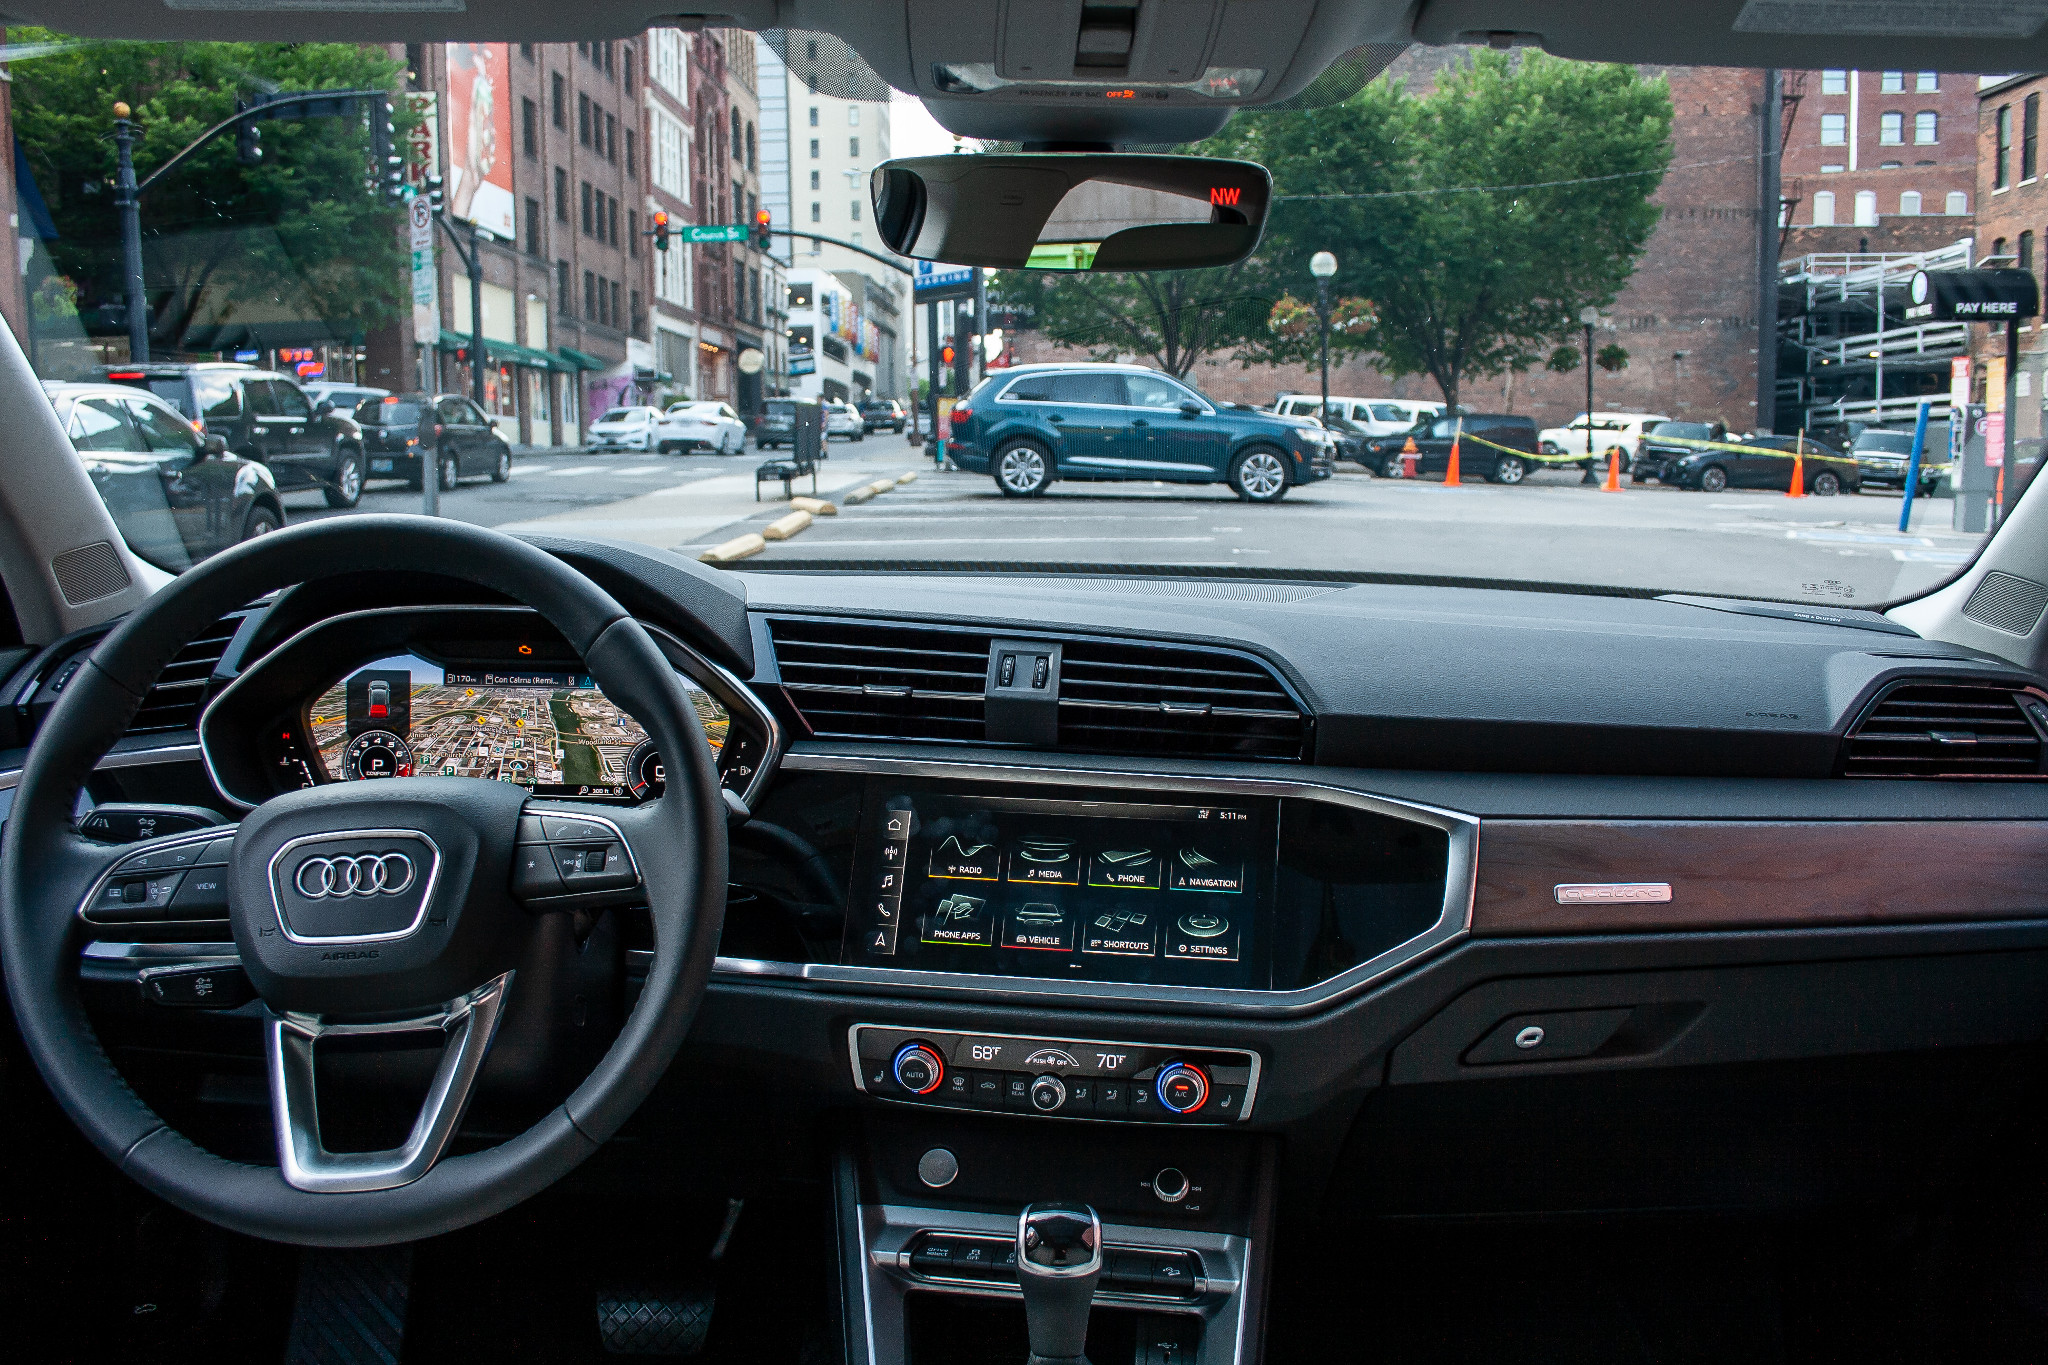 audi-q3-2019-09-cockpit-shot--interior.jpg